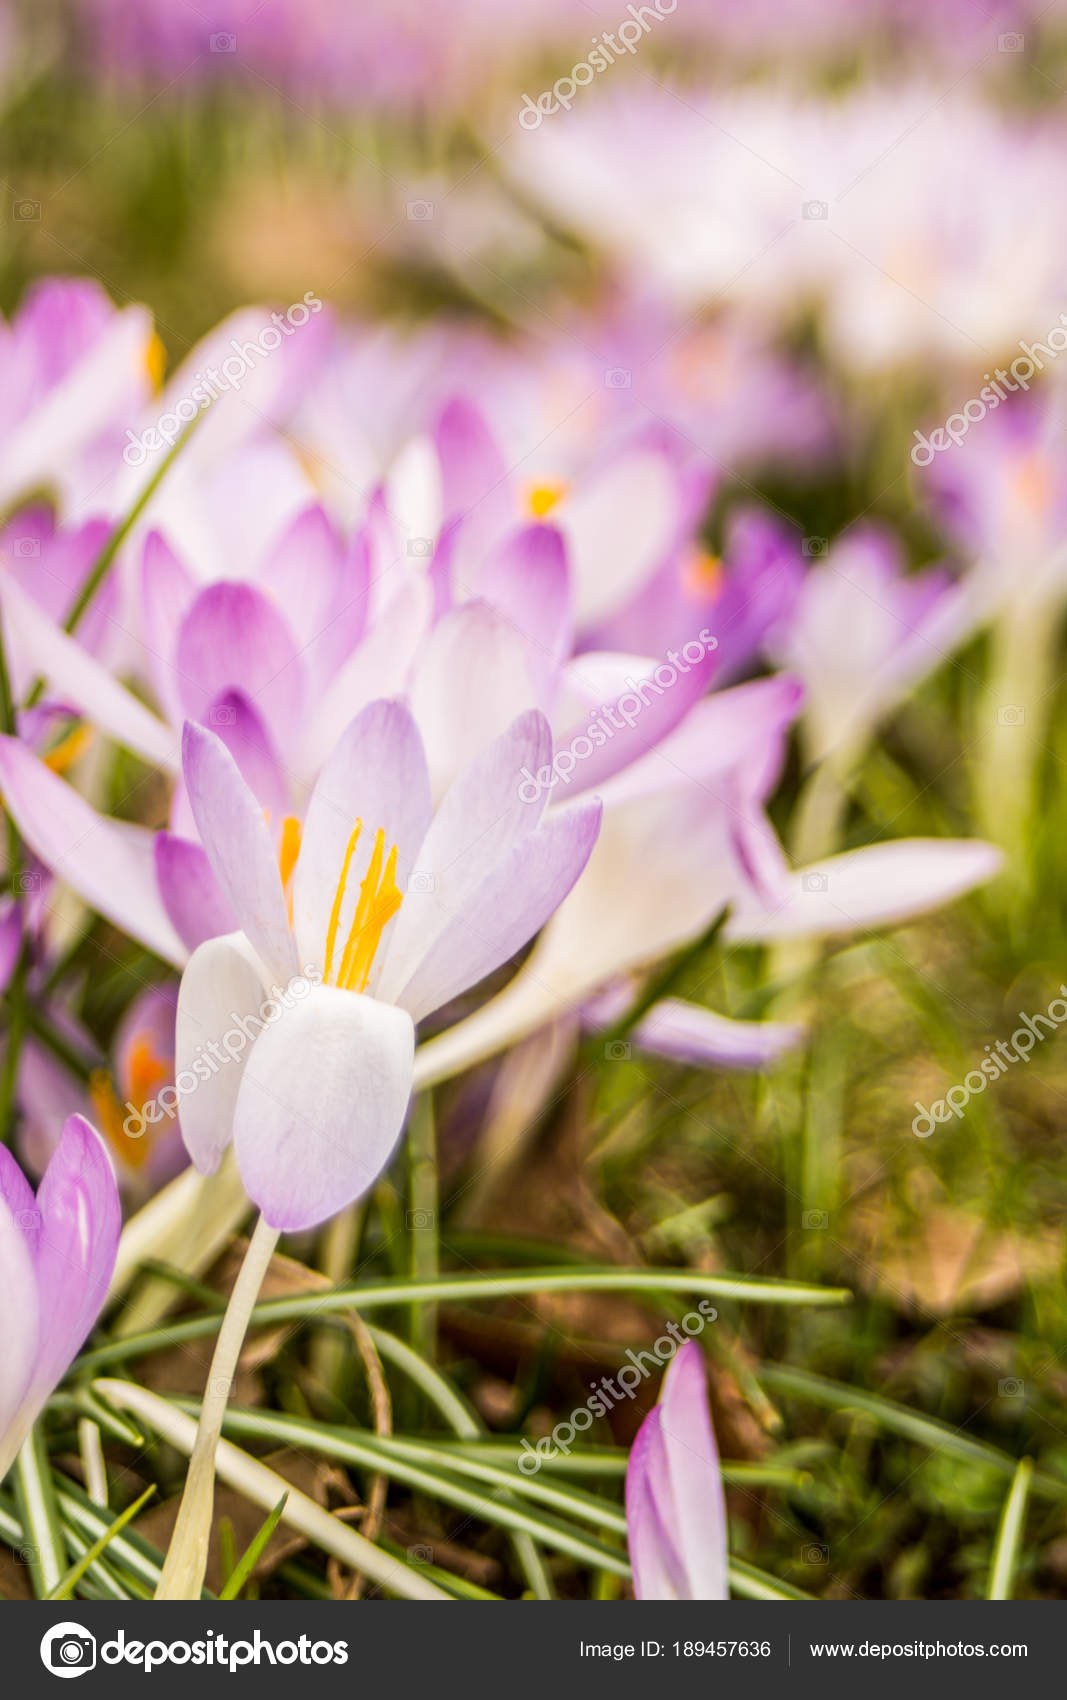 Crocus Plural Crocuses Croci Genus Flowering Plants Iris Family